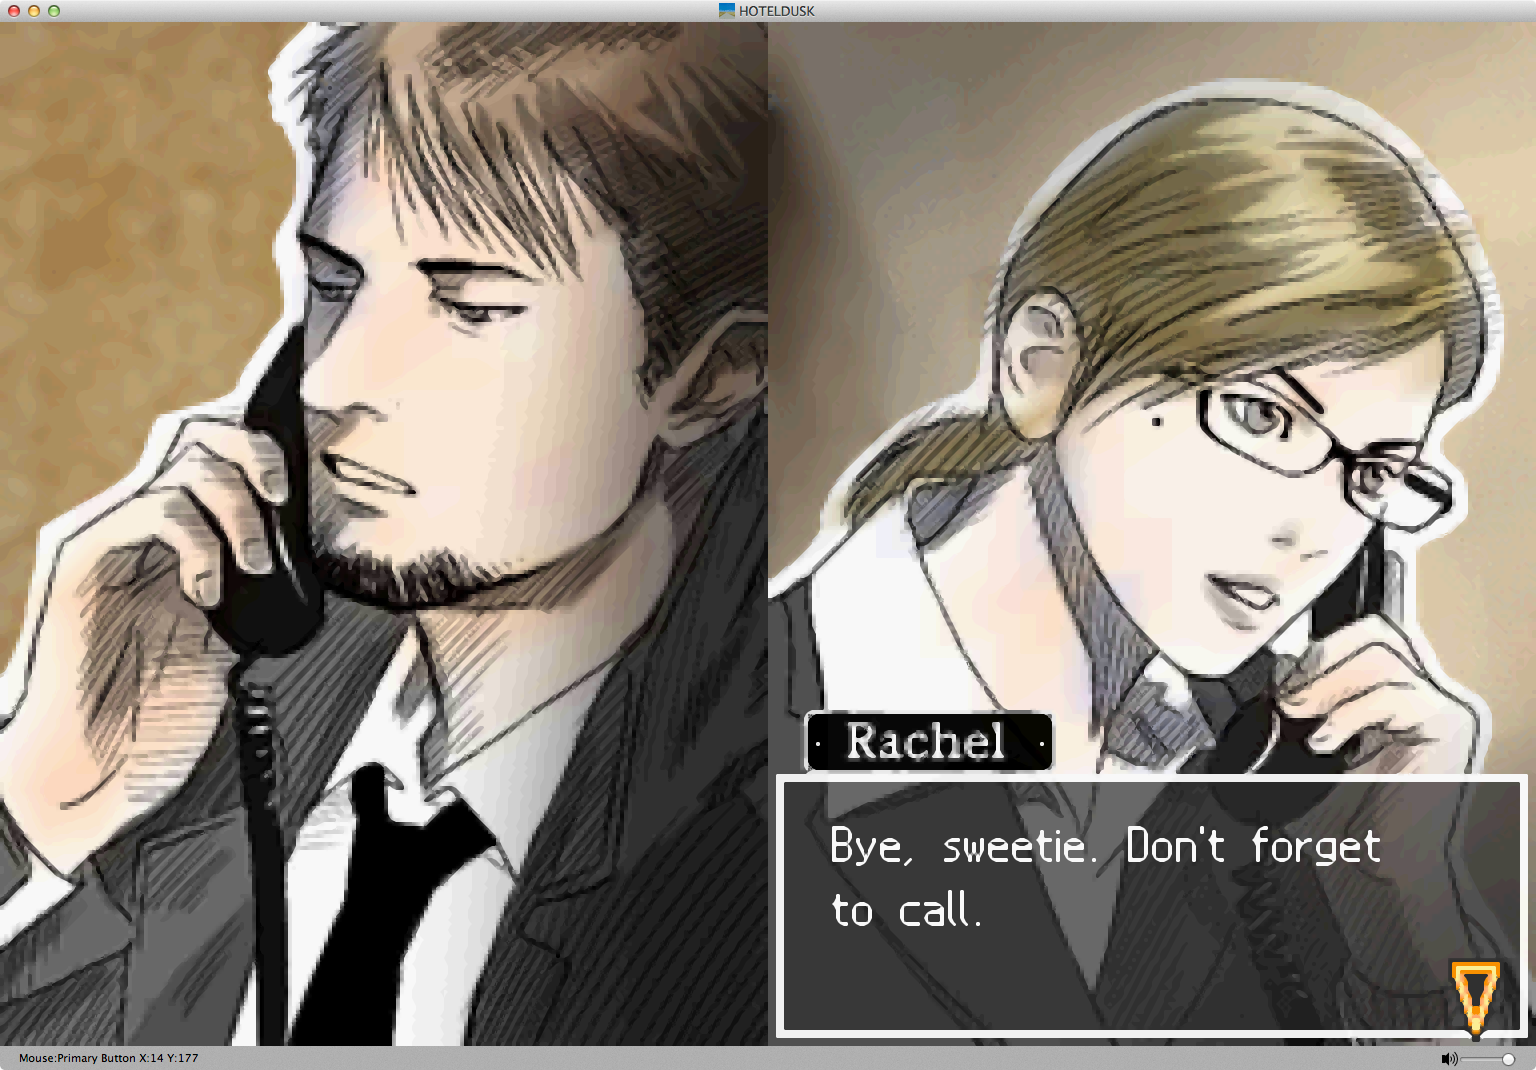 HOTELDUSK - Screenshot 1.png